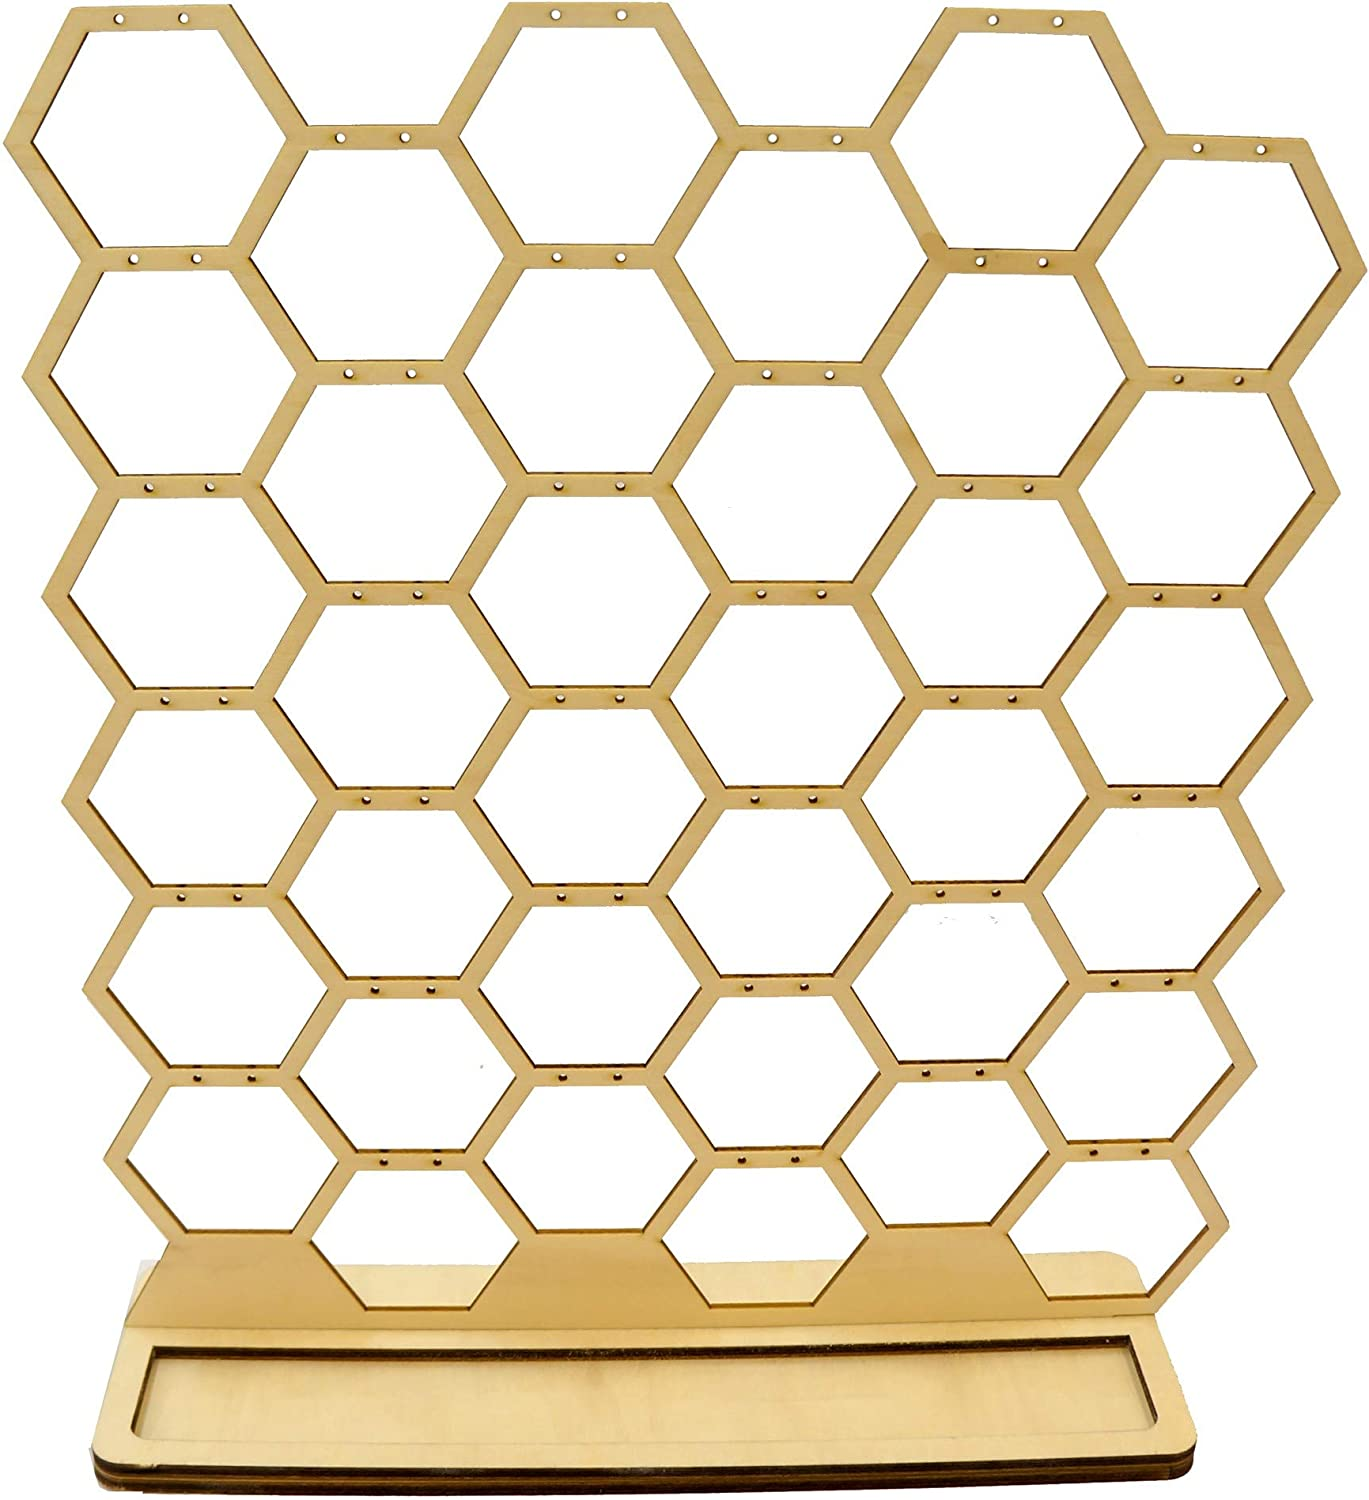 32 Honeycomb Honeycomb Earrings Jewelry Wood Display Stand Hexagon Geometric Shapes for Craft Fair Trade Show and Shop